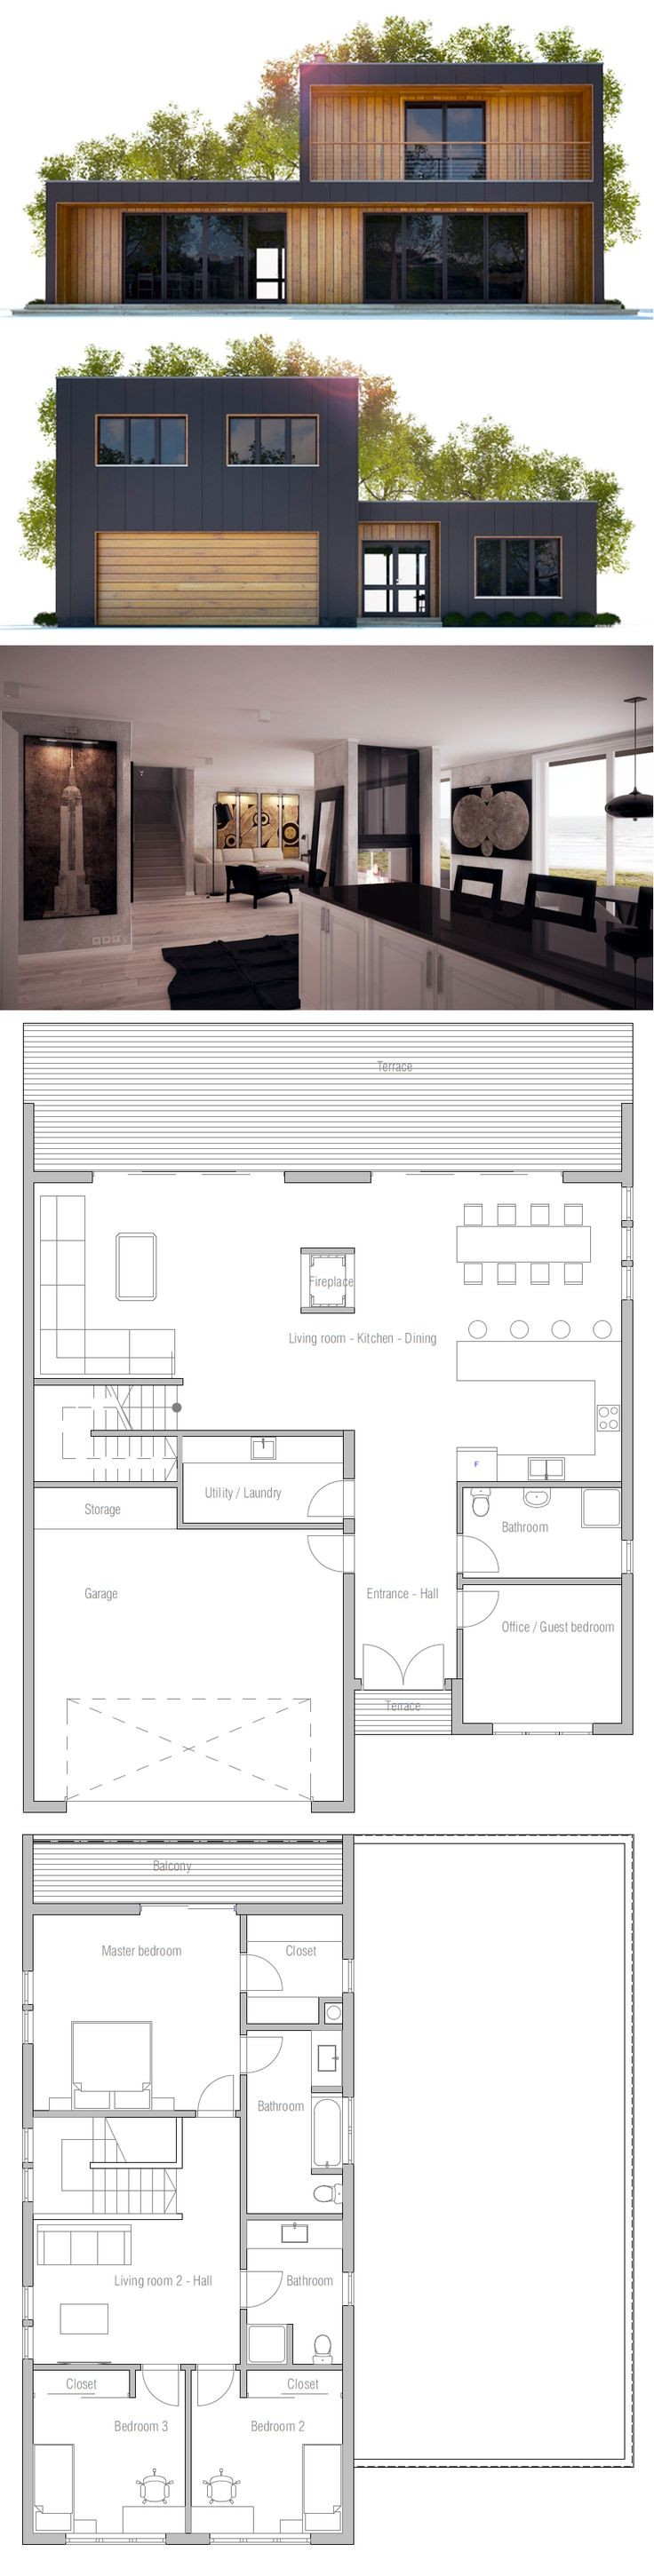 best 25 modern house plans ideas on pinterest modern house house plan could replace the garage with the spare bedrooms and guest bath then switch the upstairs around to add a larger balcony instead of the extra